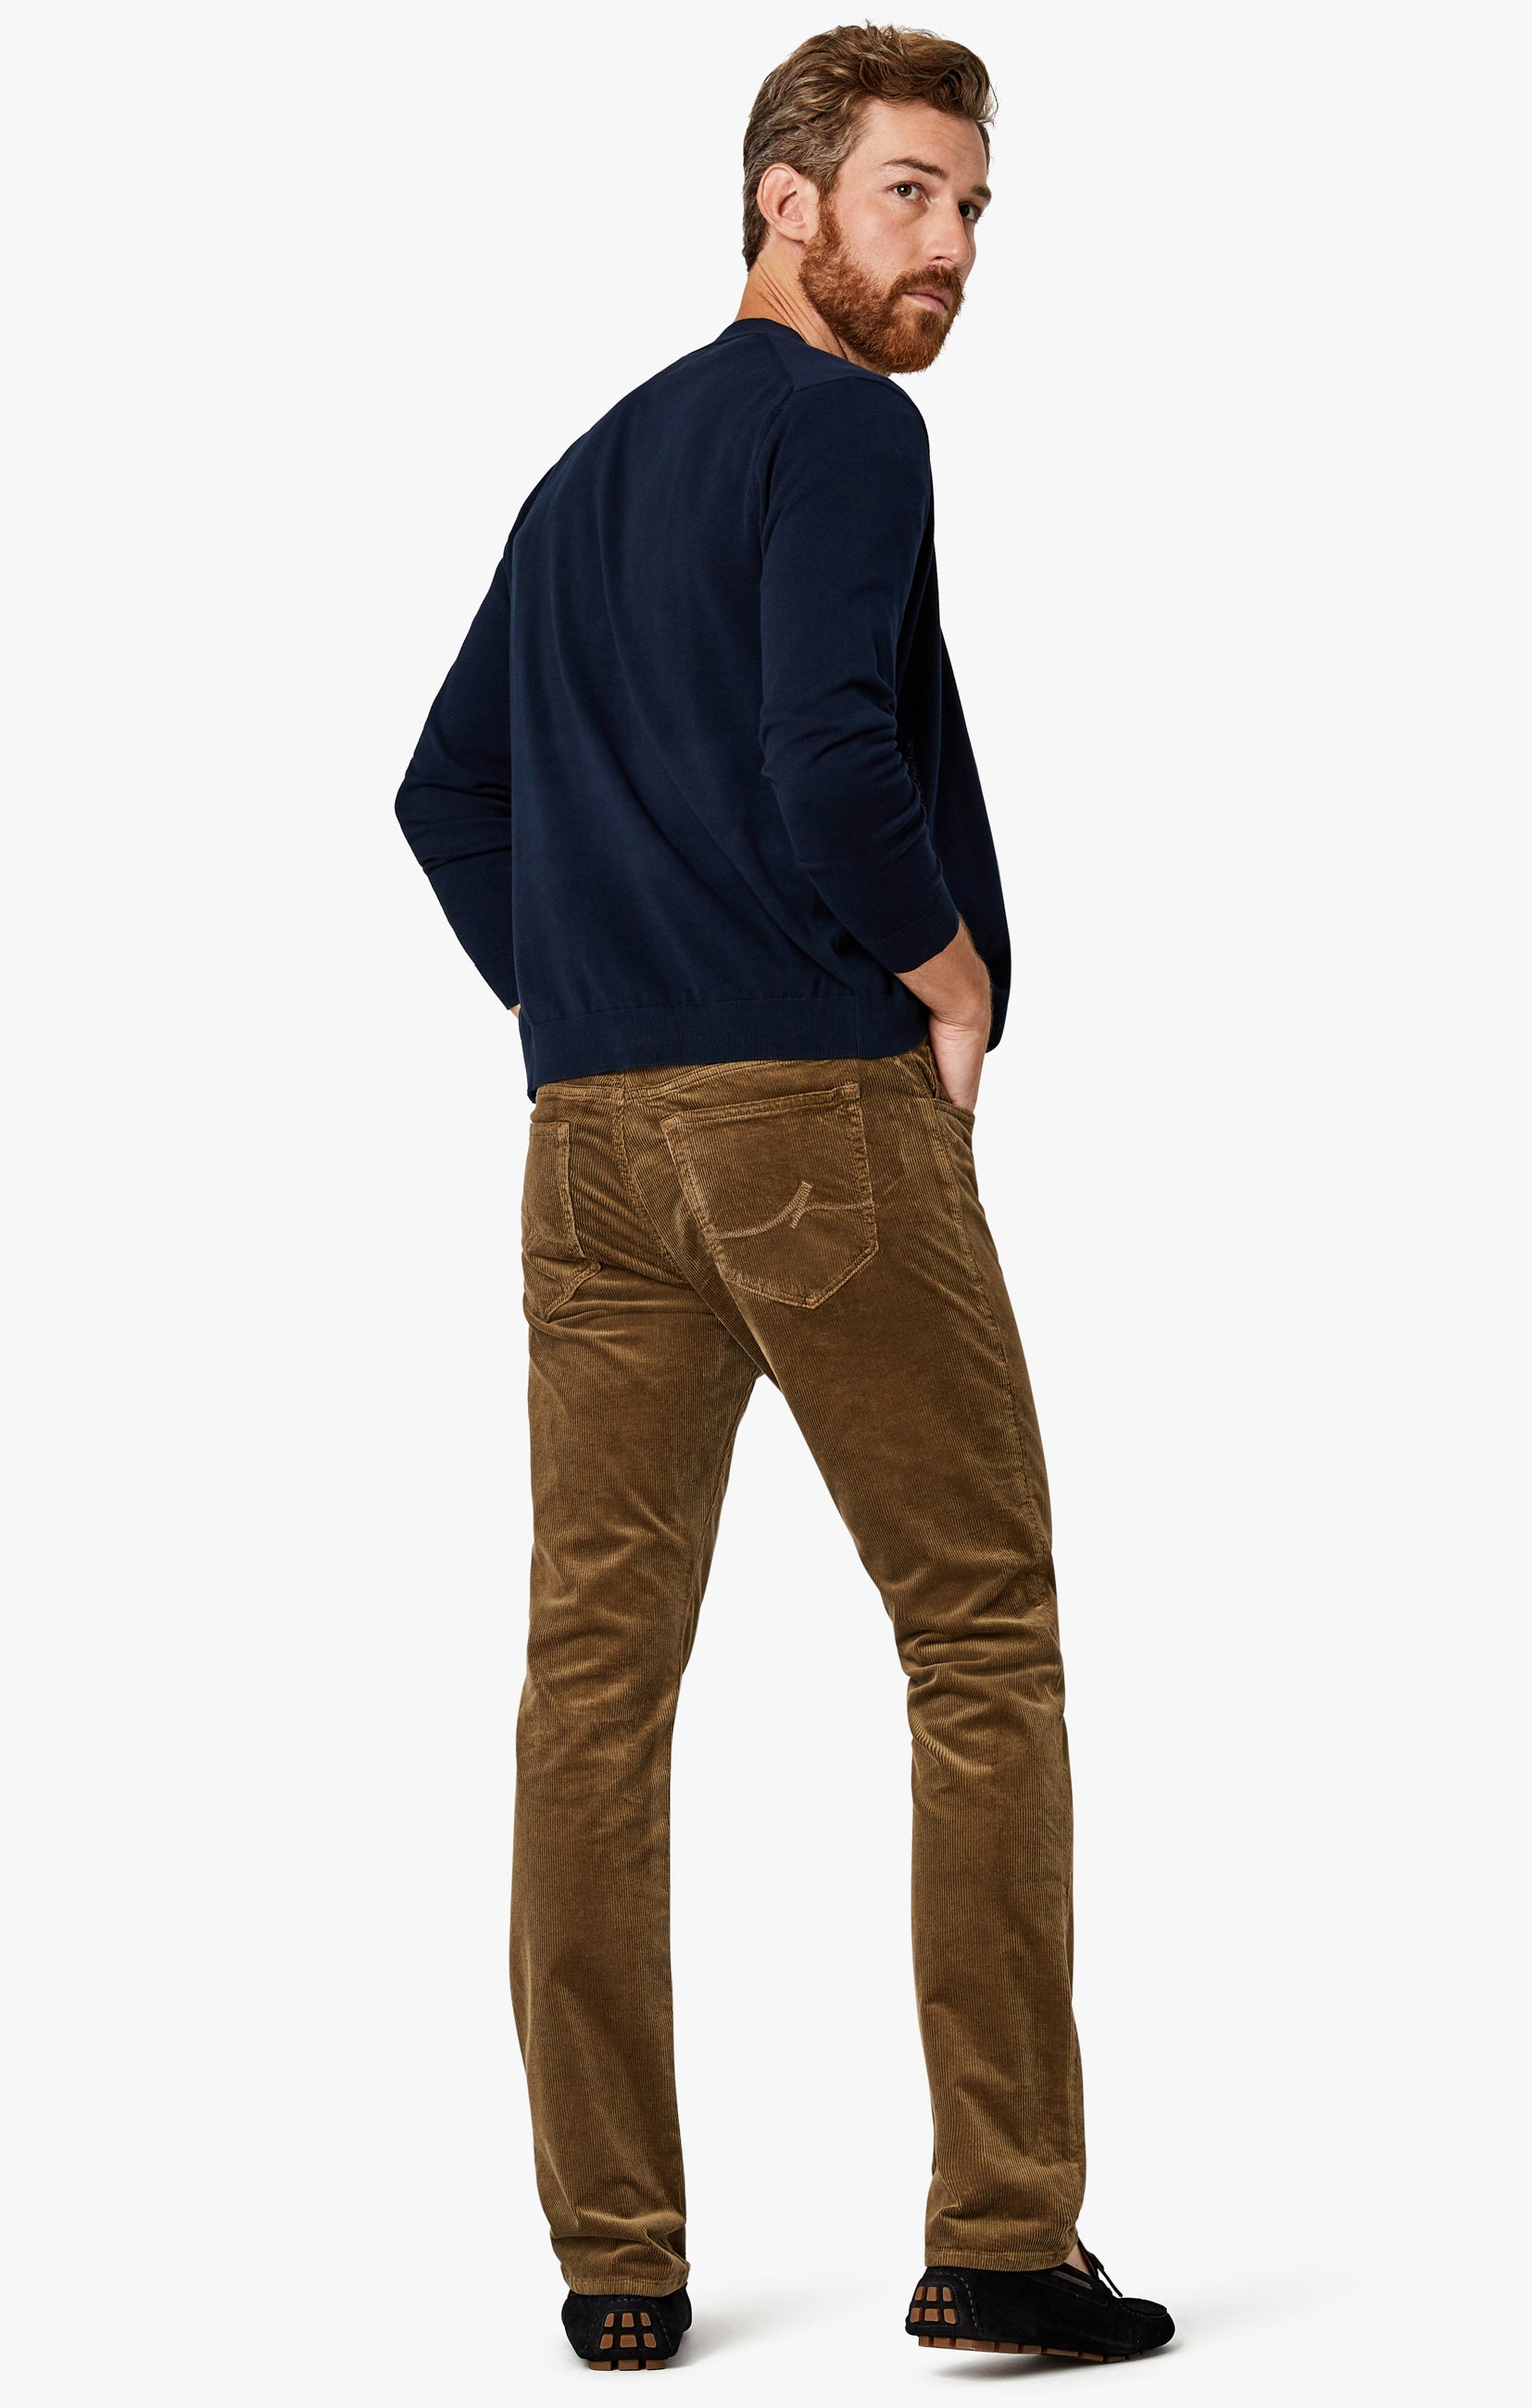 Charisma Relaxed Straight Pants in Tobacco Cord Image 1